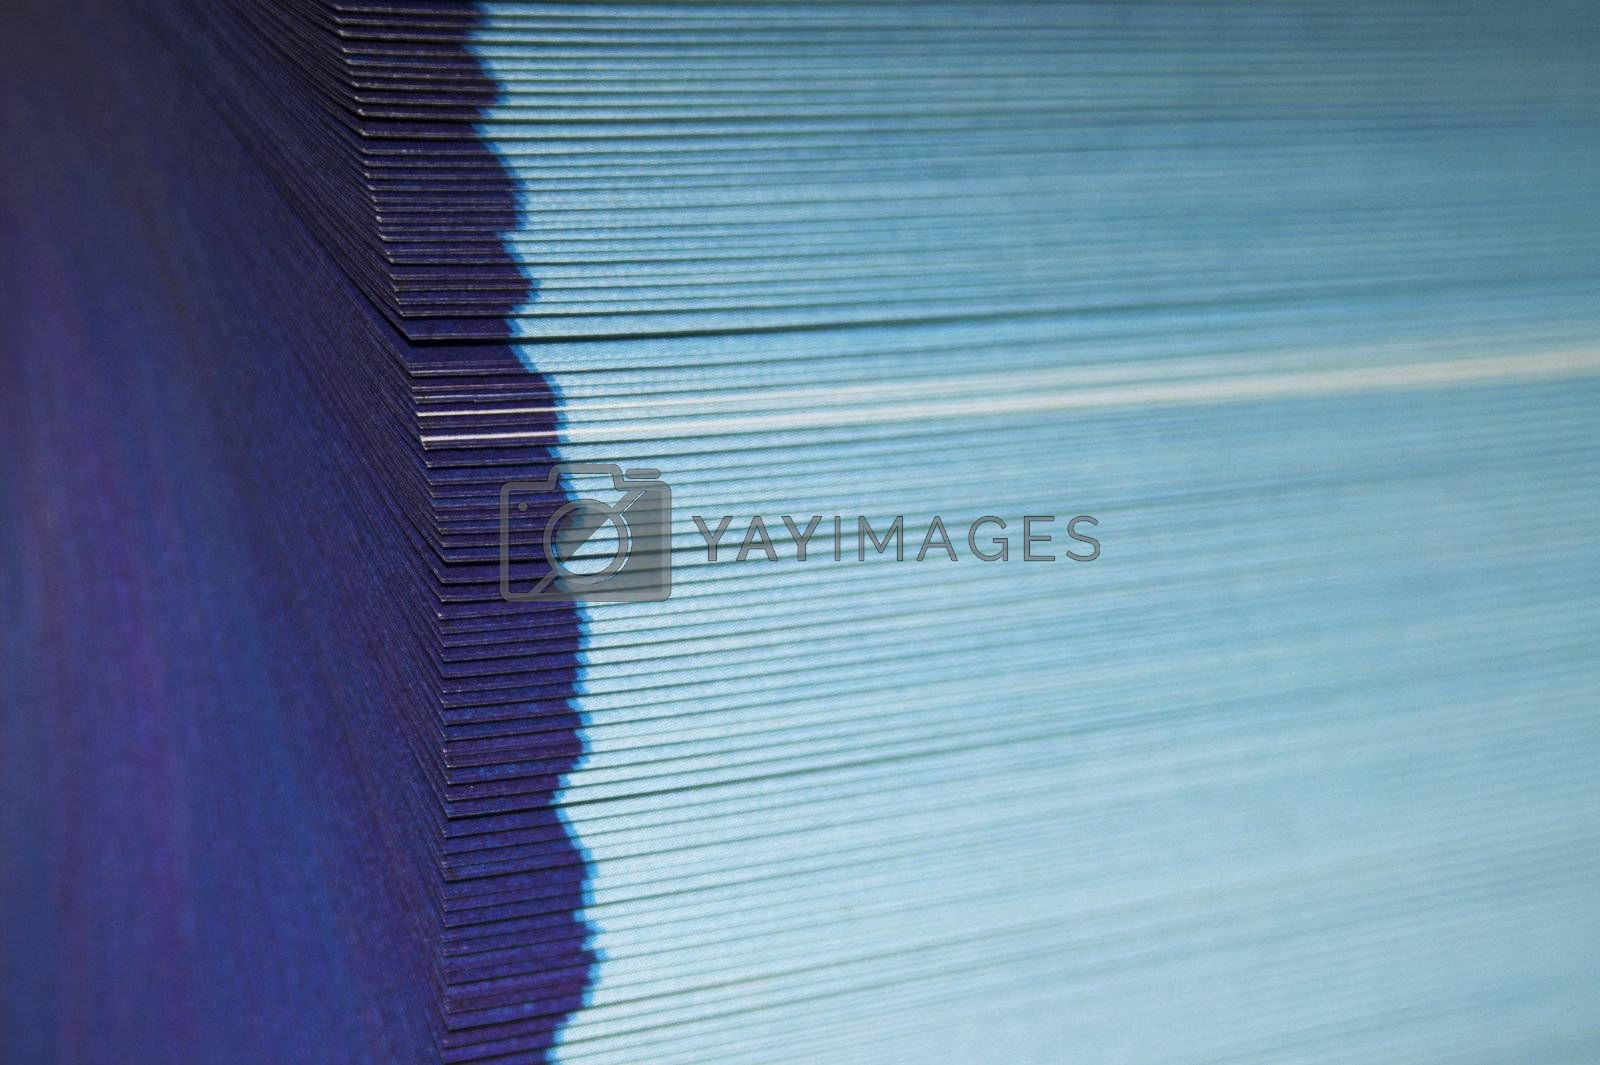 Royalty free image of Fanned pages  by simfan